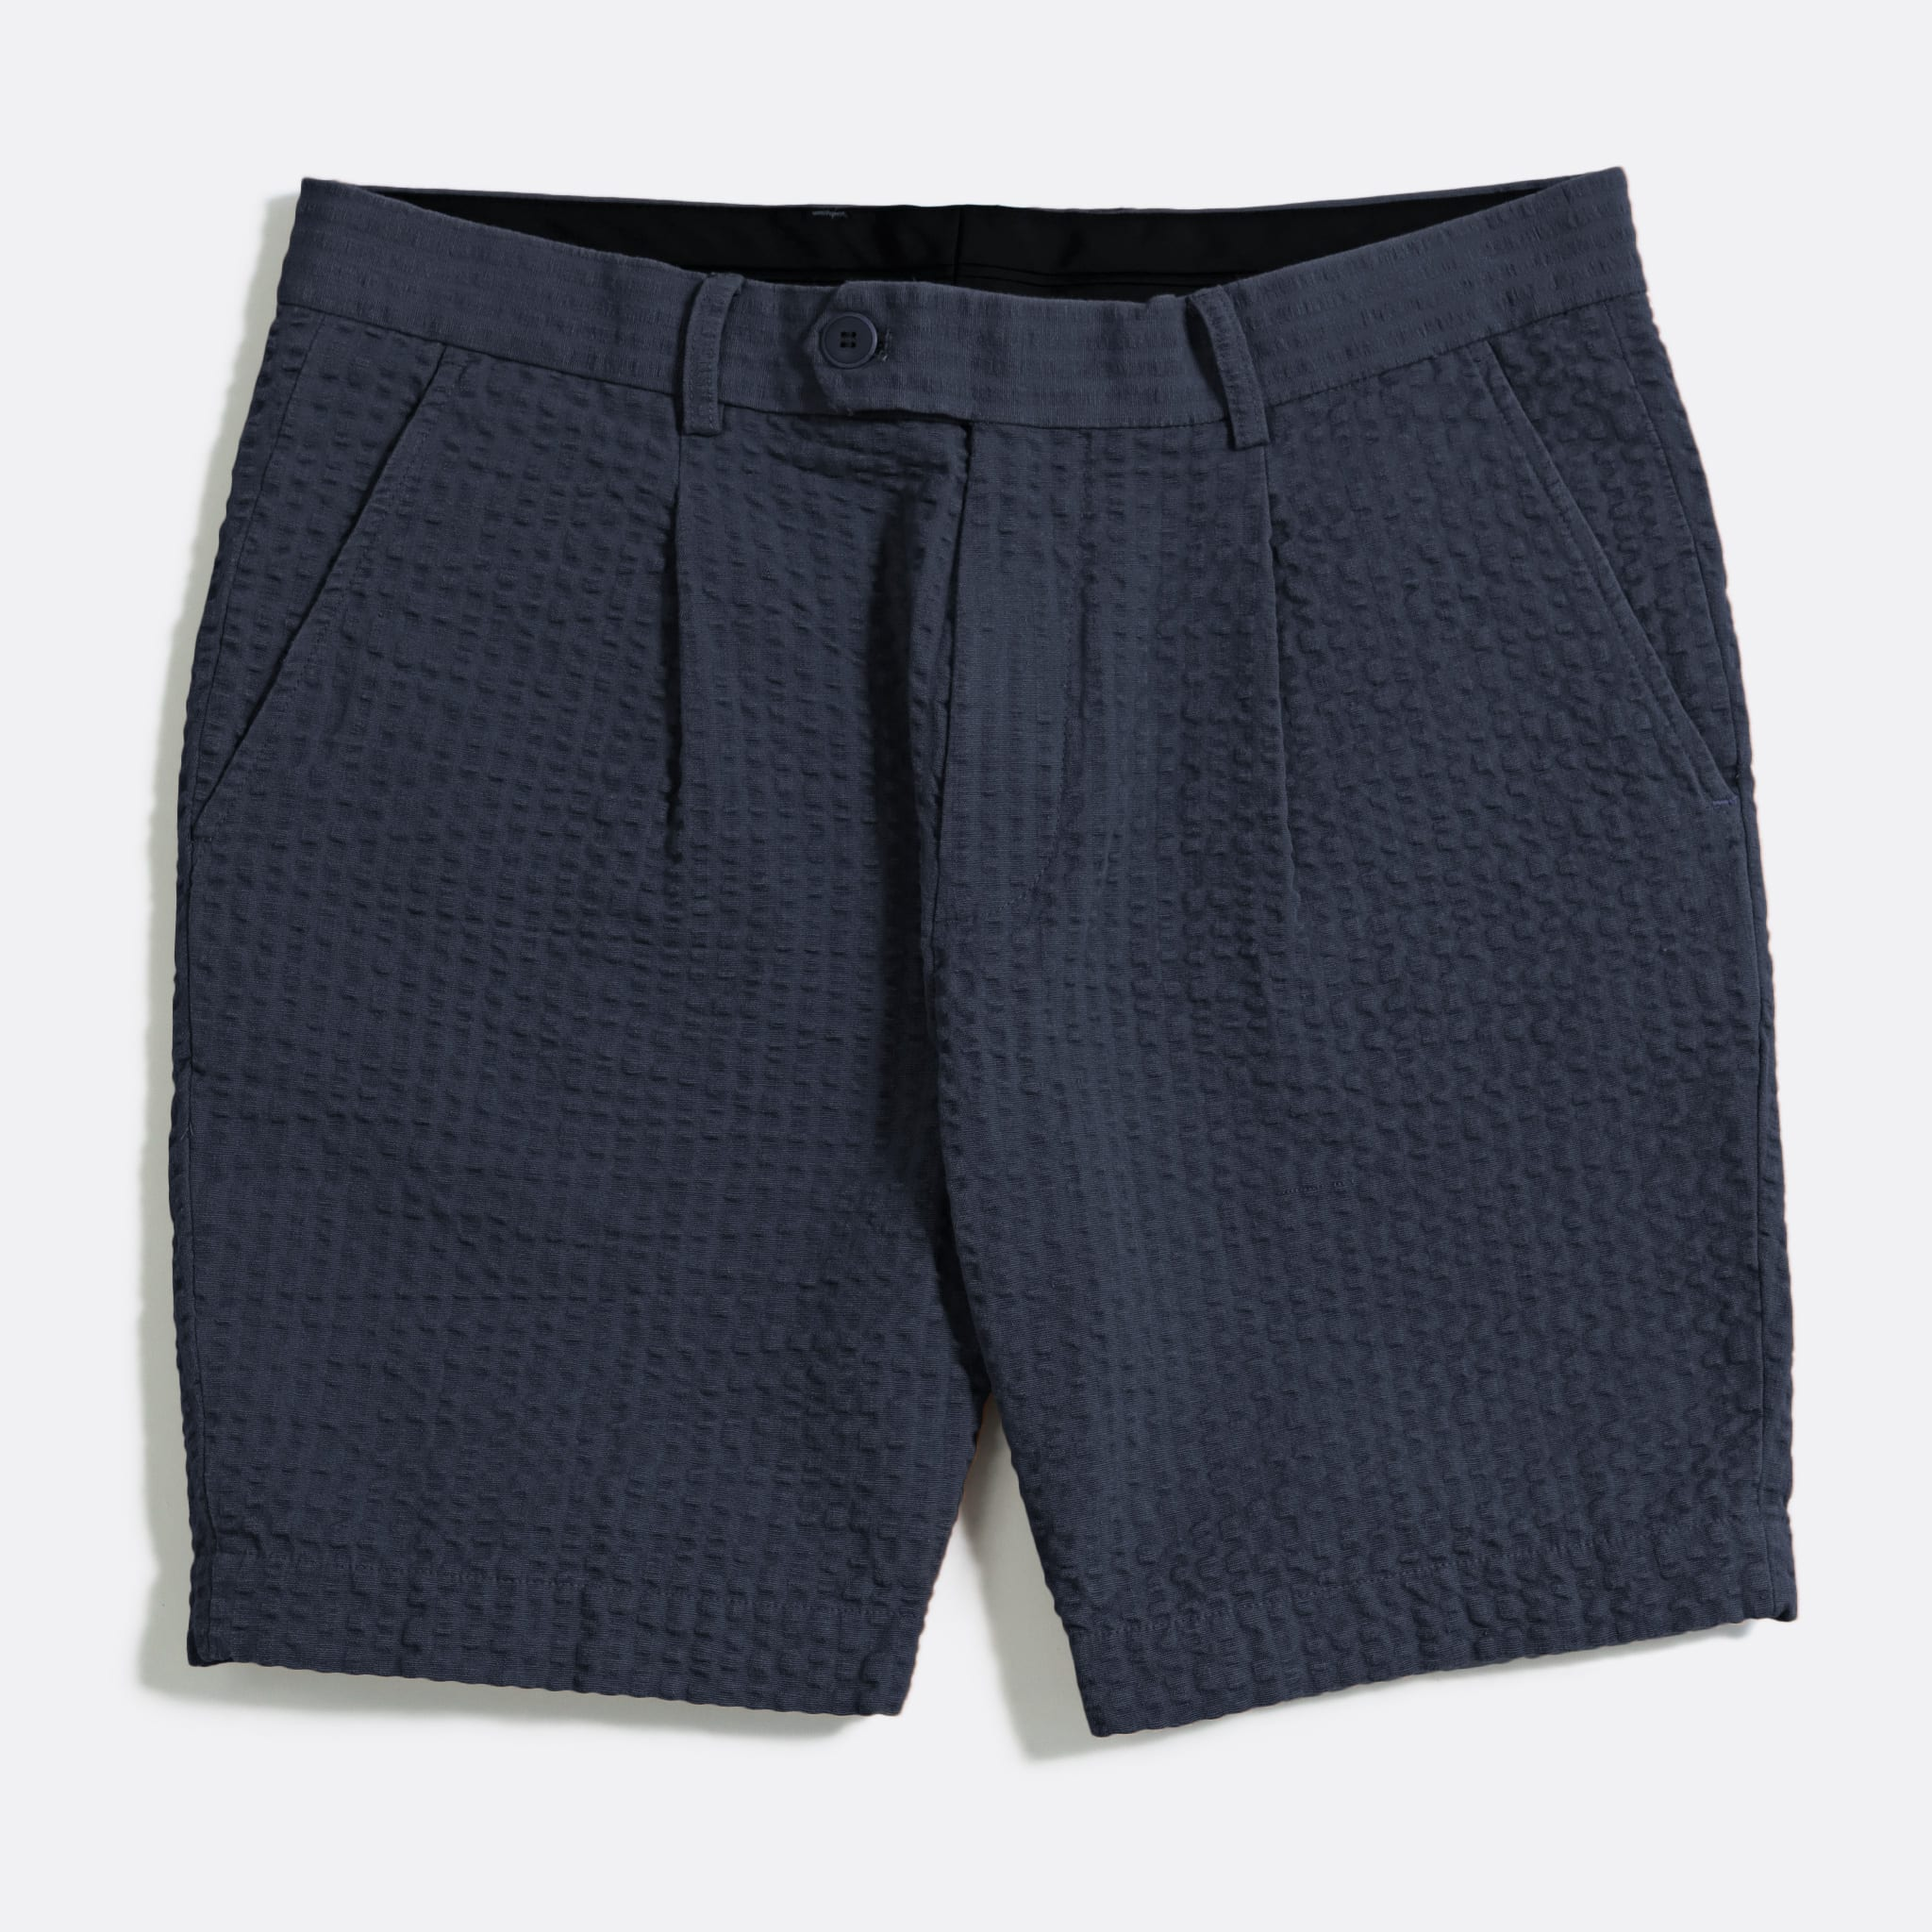 Far Afield Pleat Shorts a Ensign Blue BCI Cotton Fabric SeersuckerSmart Casual